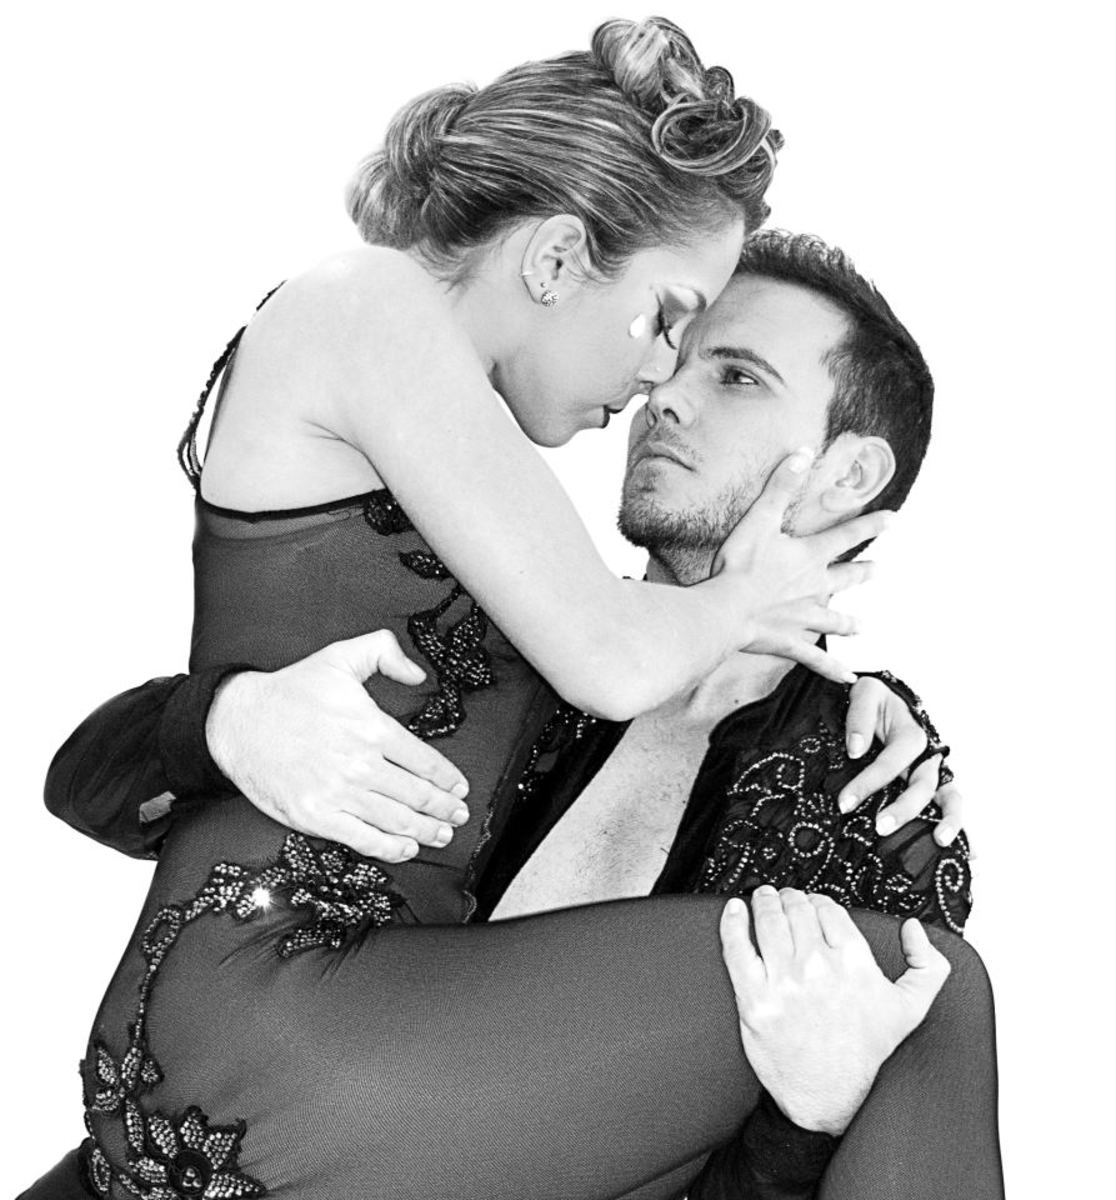 Dancing with your romantic partner can be a very rewarding experience that adds drama and passion to your relationship!